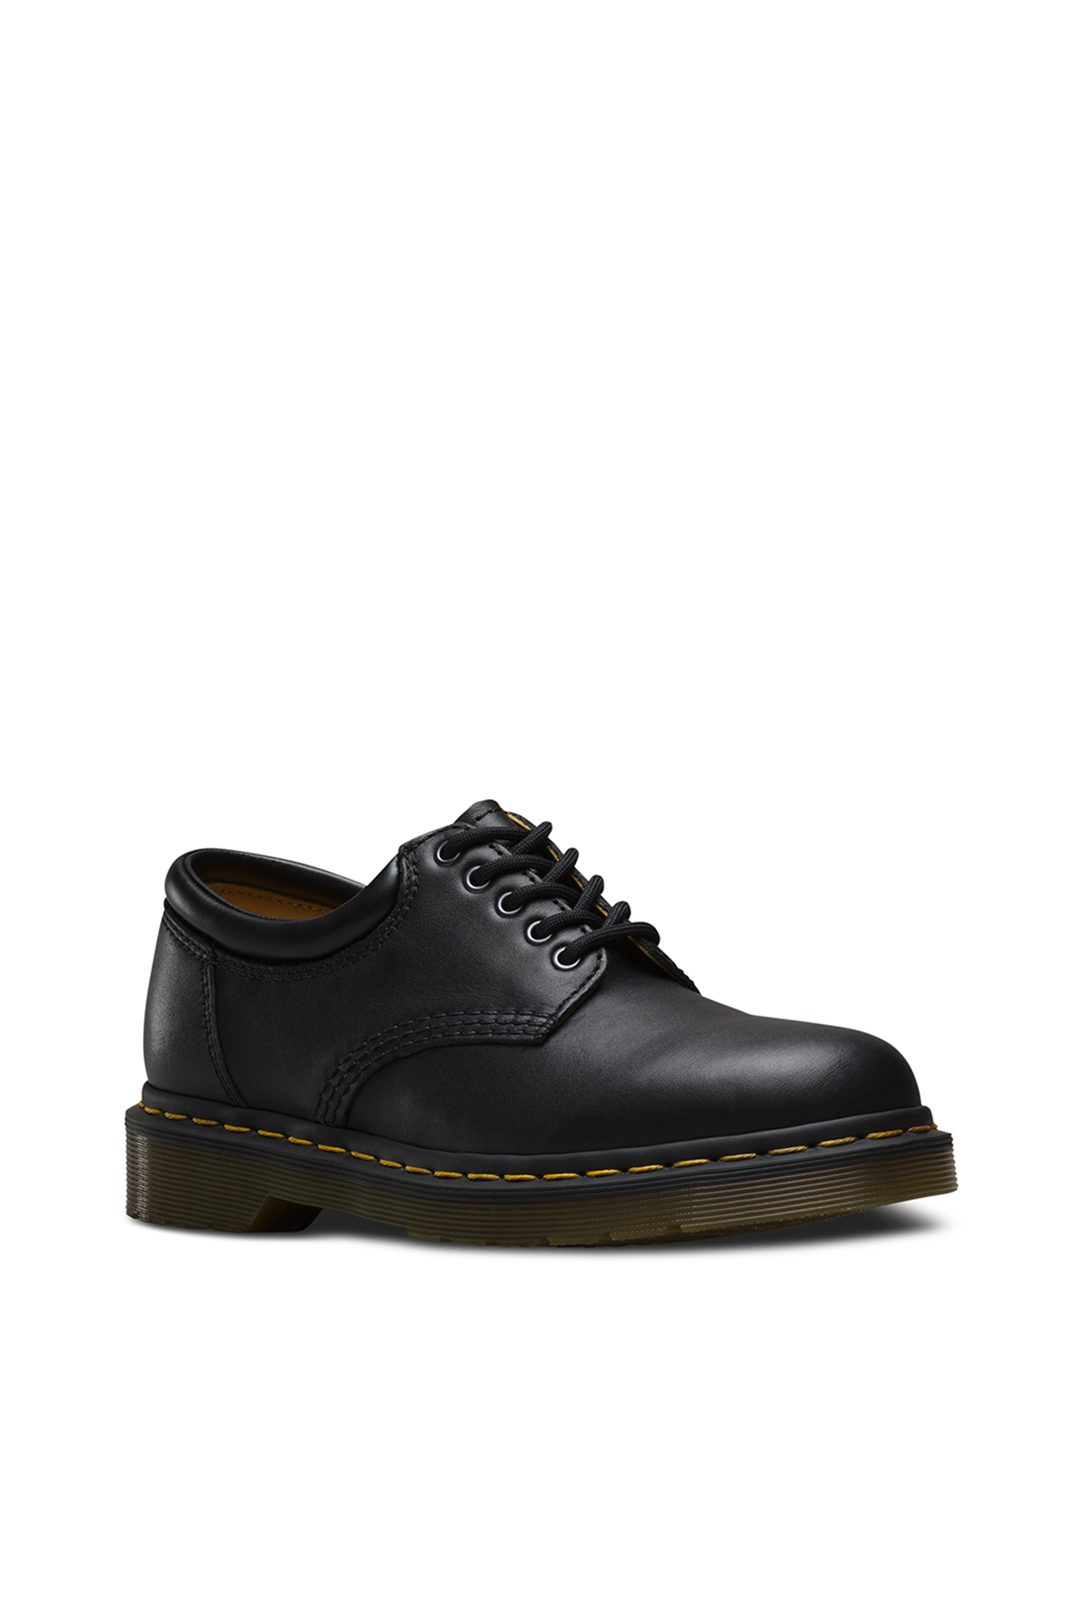 8053 5 eye shoe Black